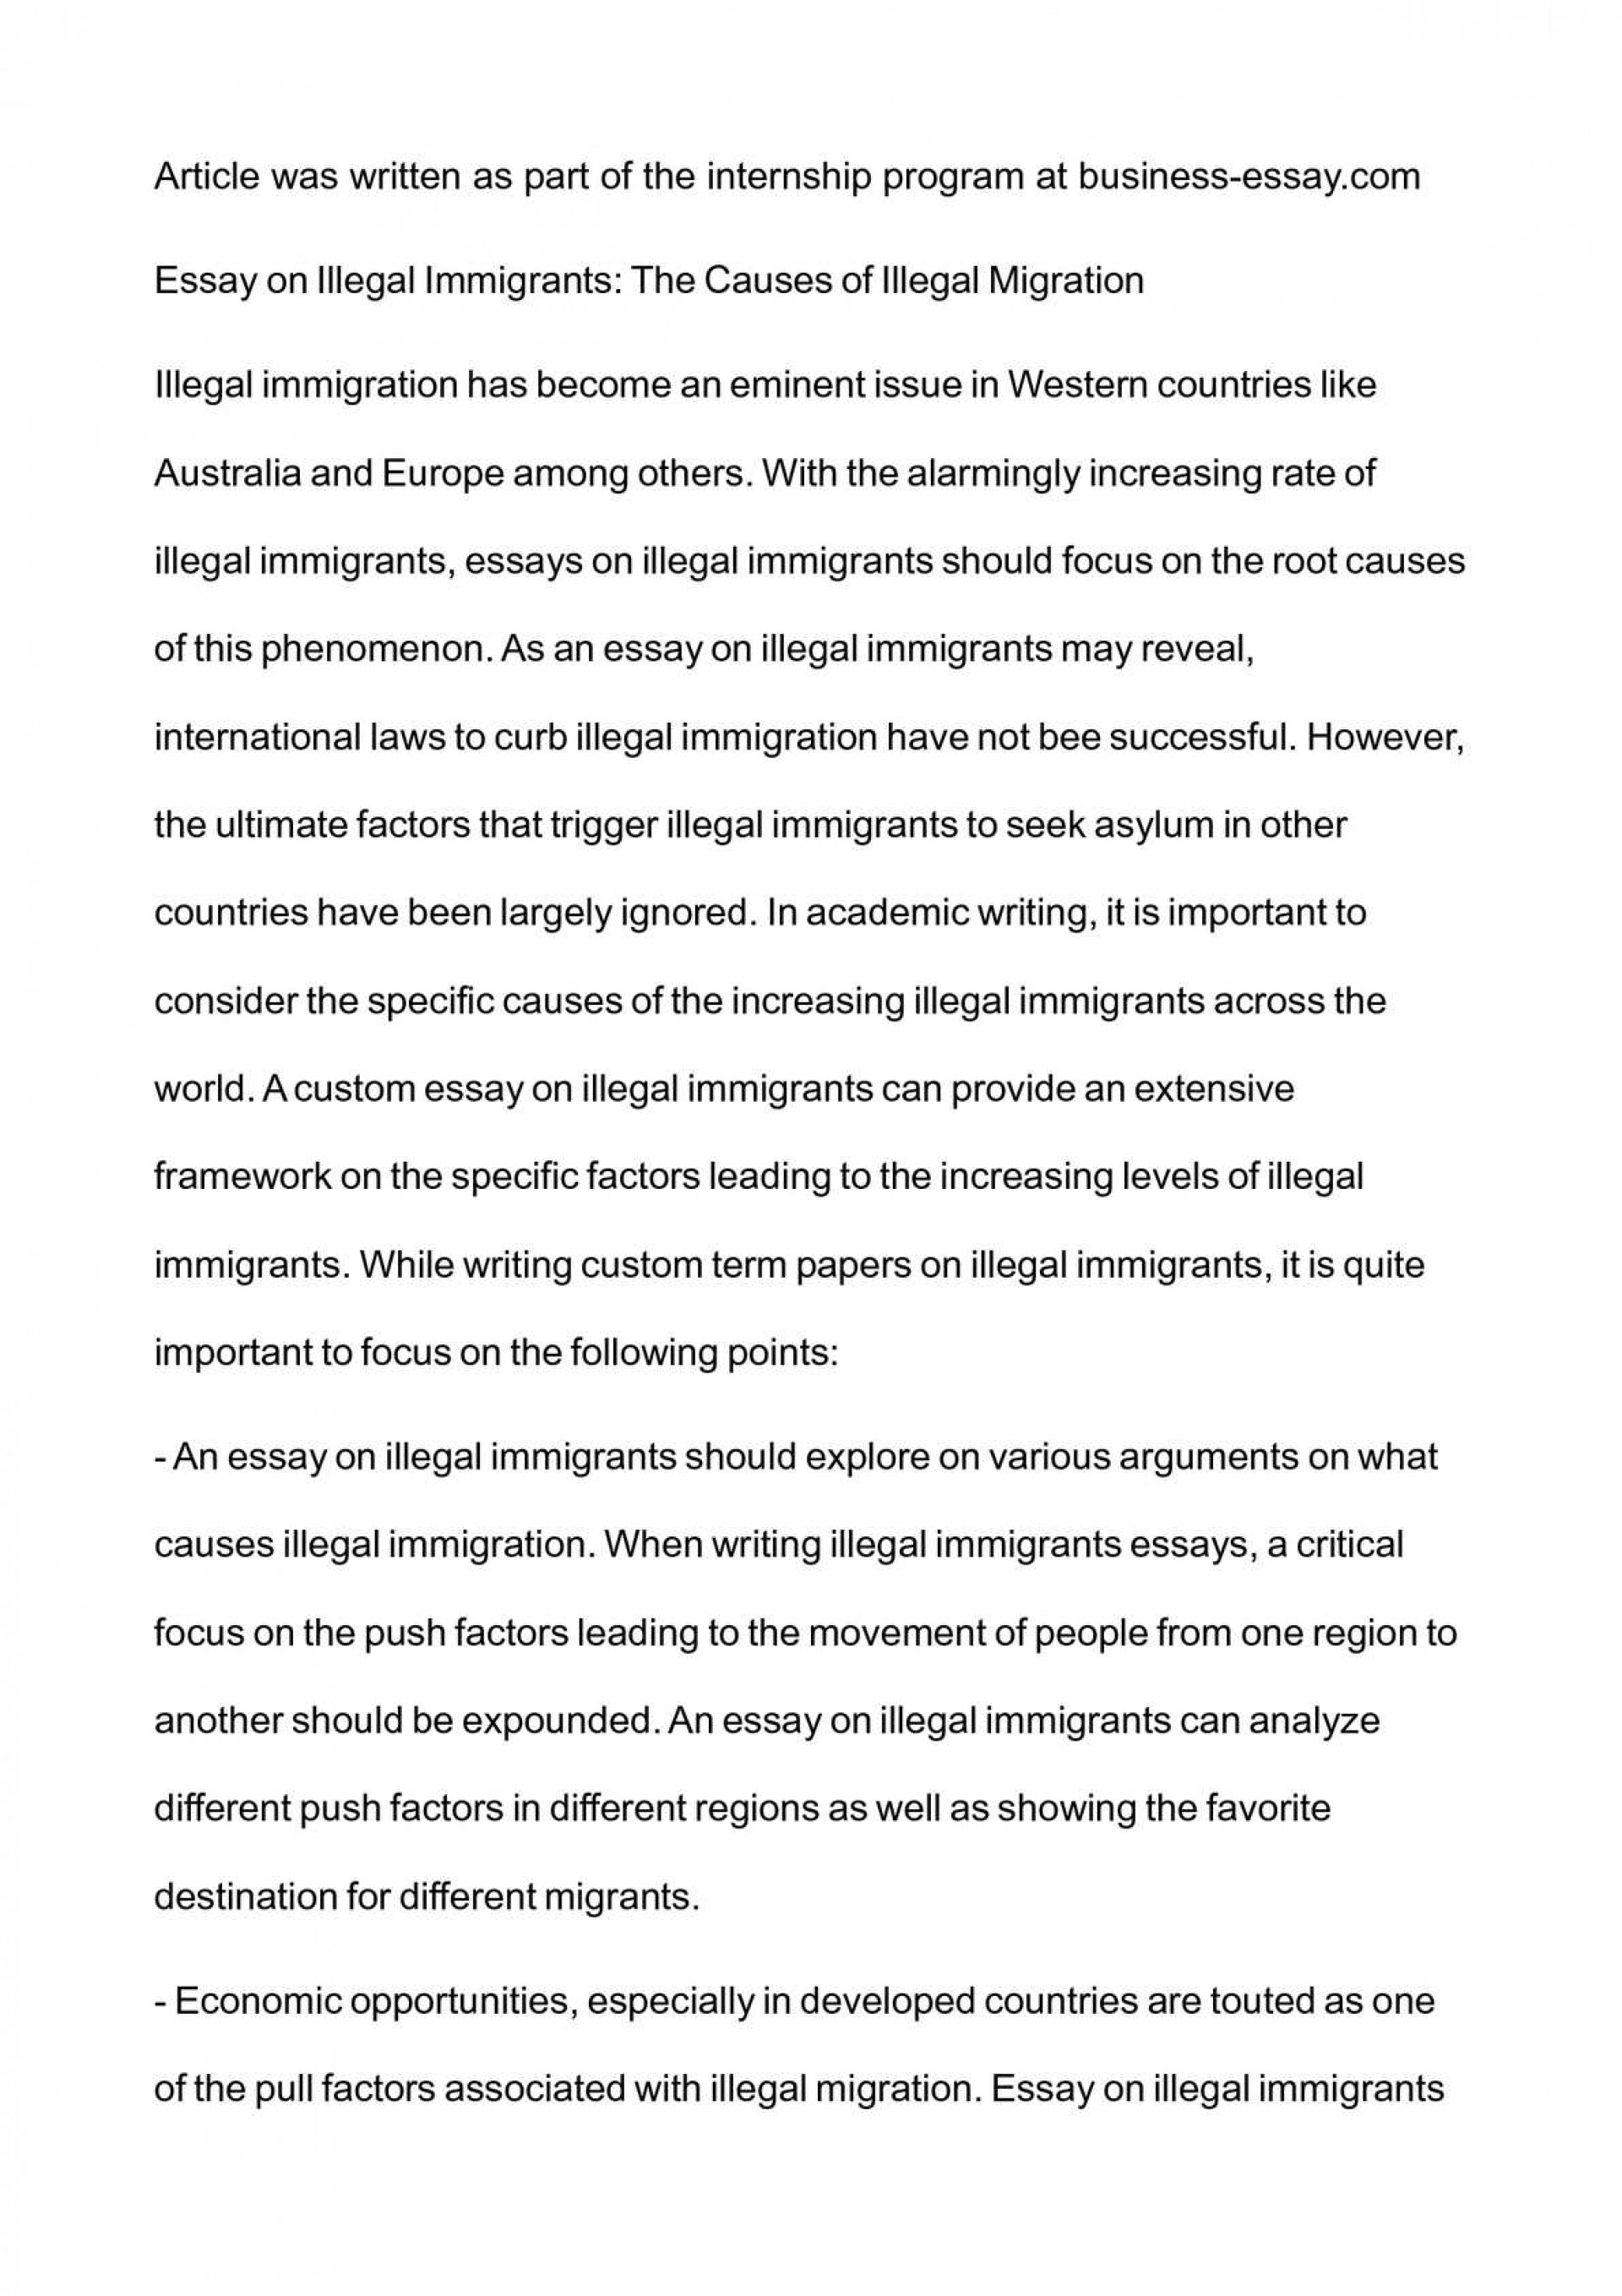 001 Essay About Immigration Argumentative On Illegal P Against Thesis Pro Outline Topics Marvelous In Canada Causes The United States 1920